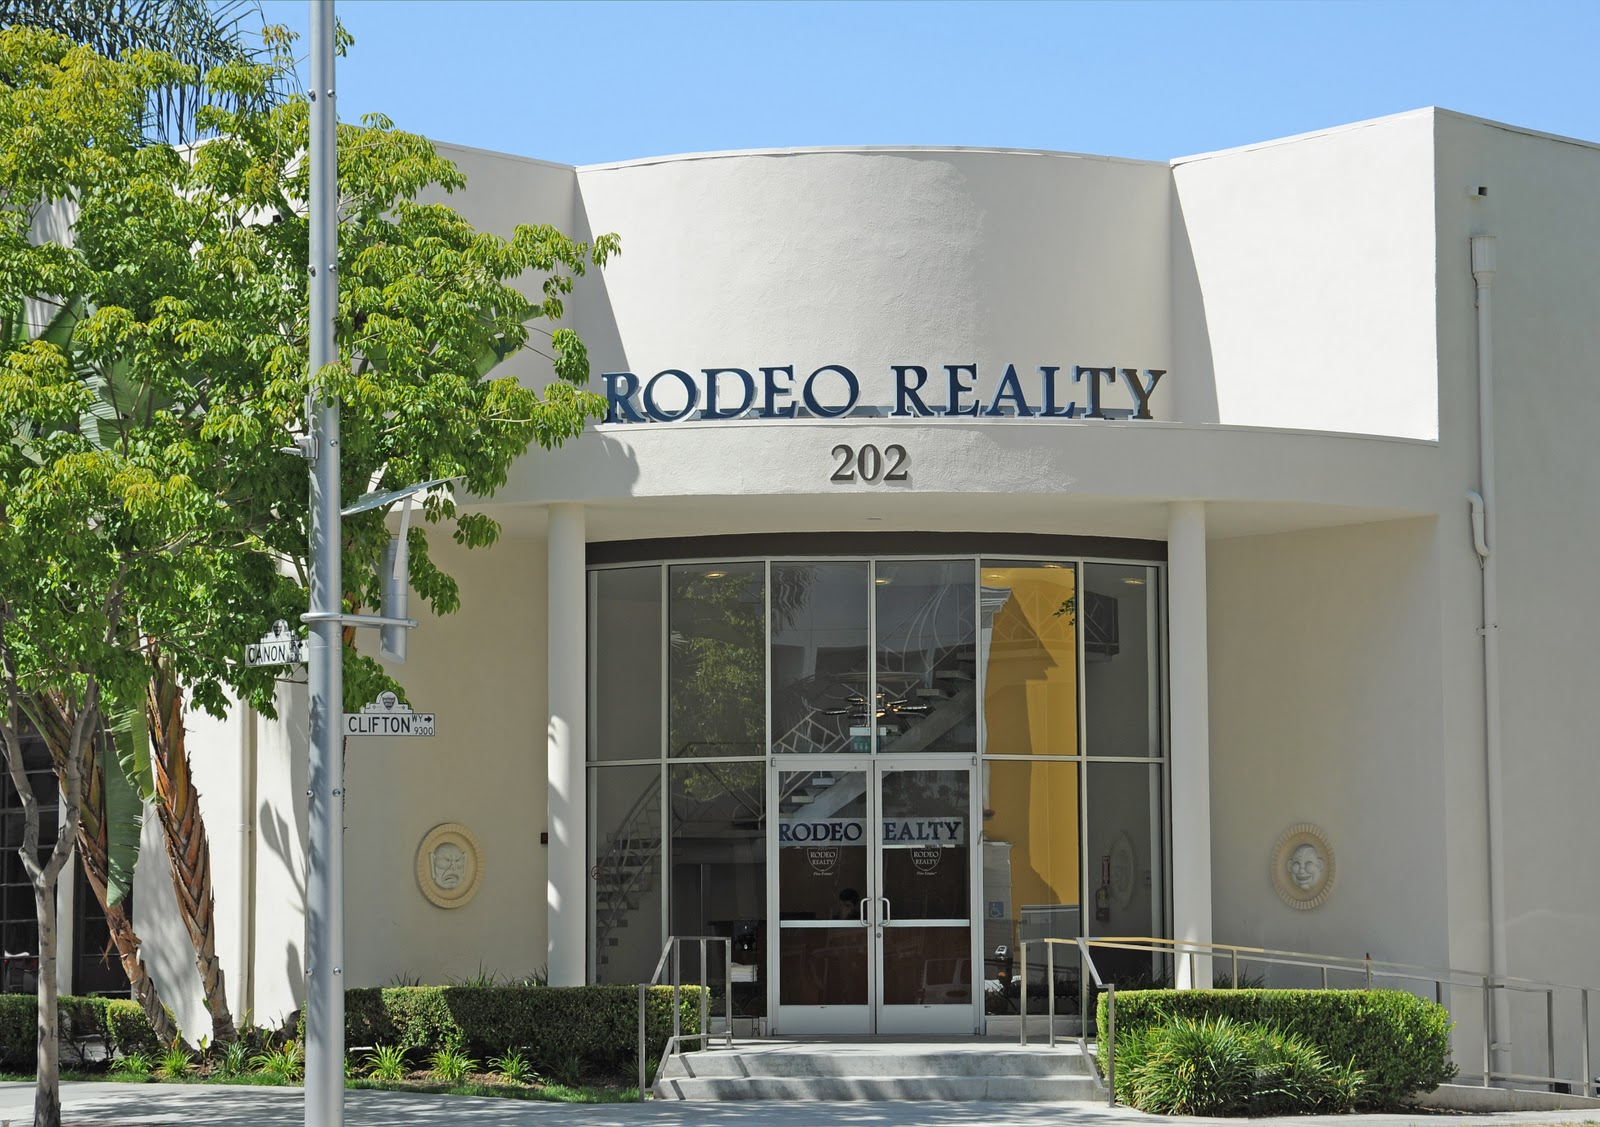 Rodeo Realty Page 169 Of 183 News Amp Media